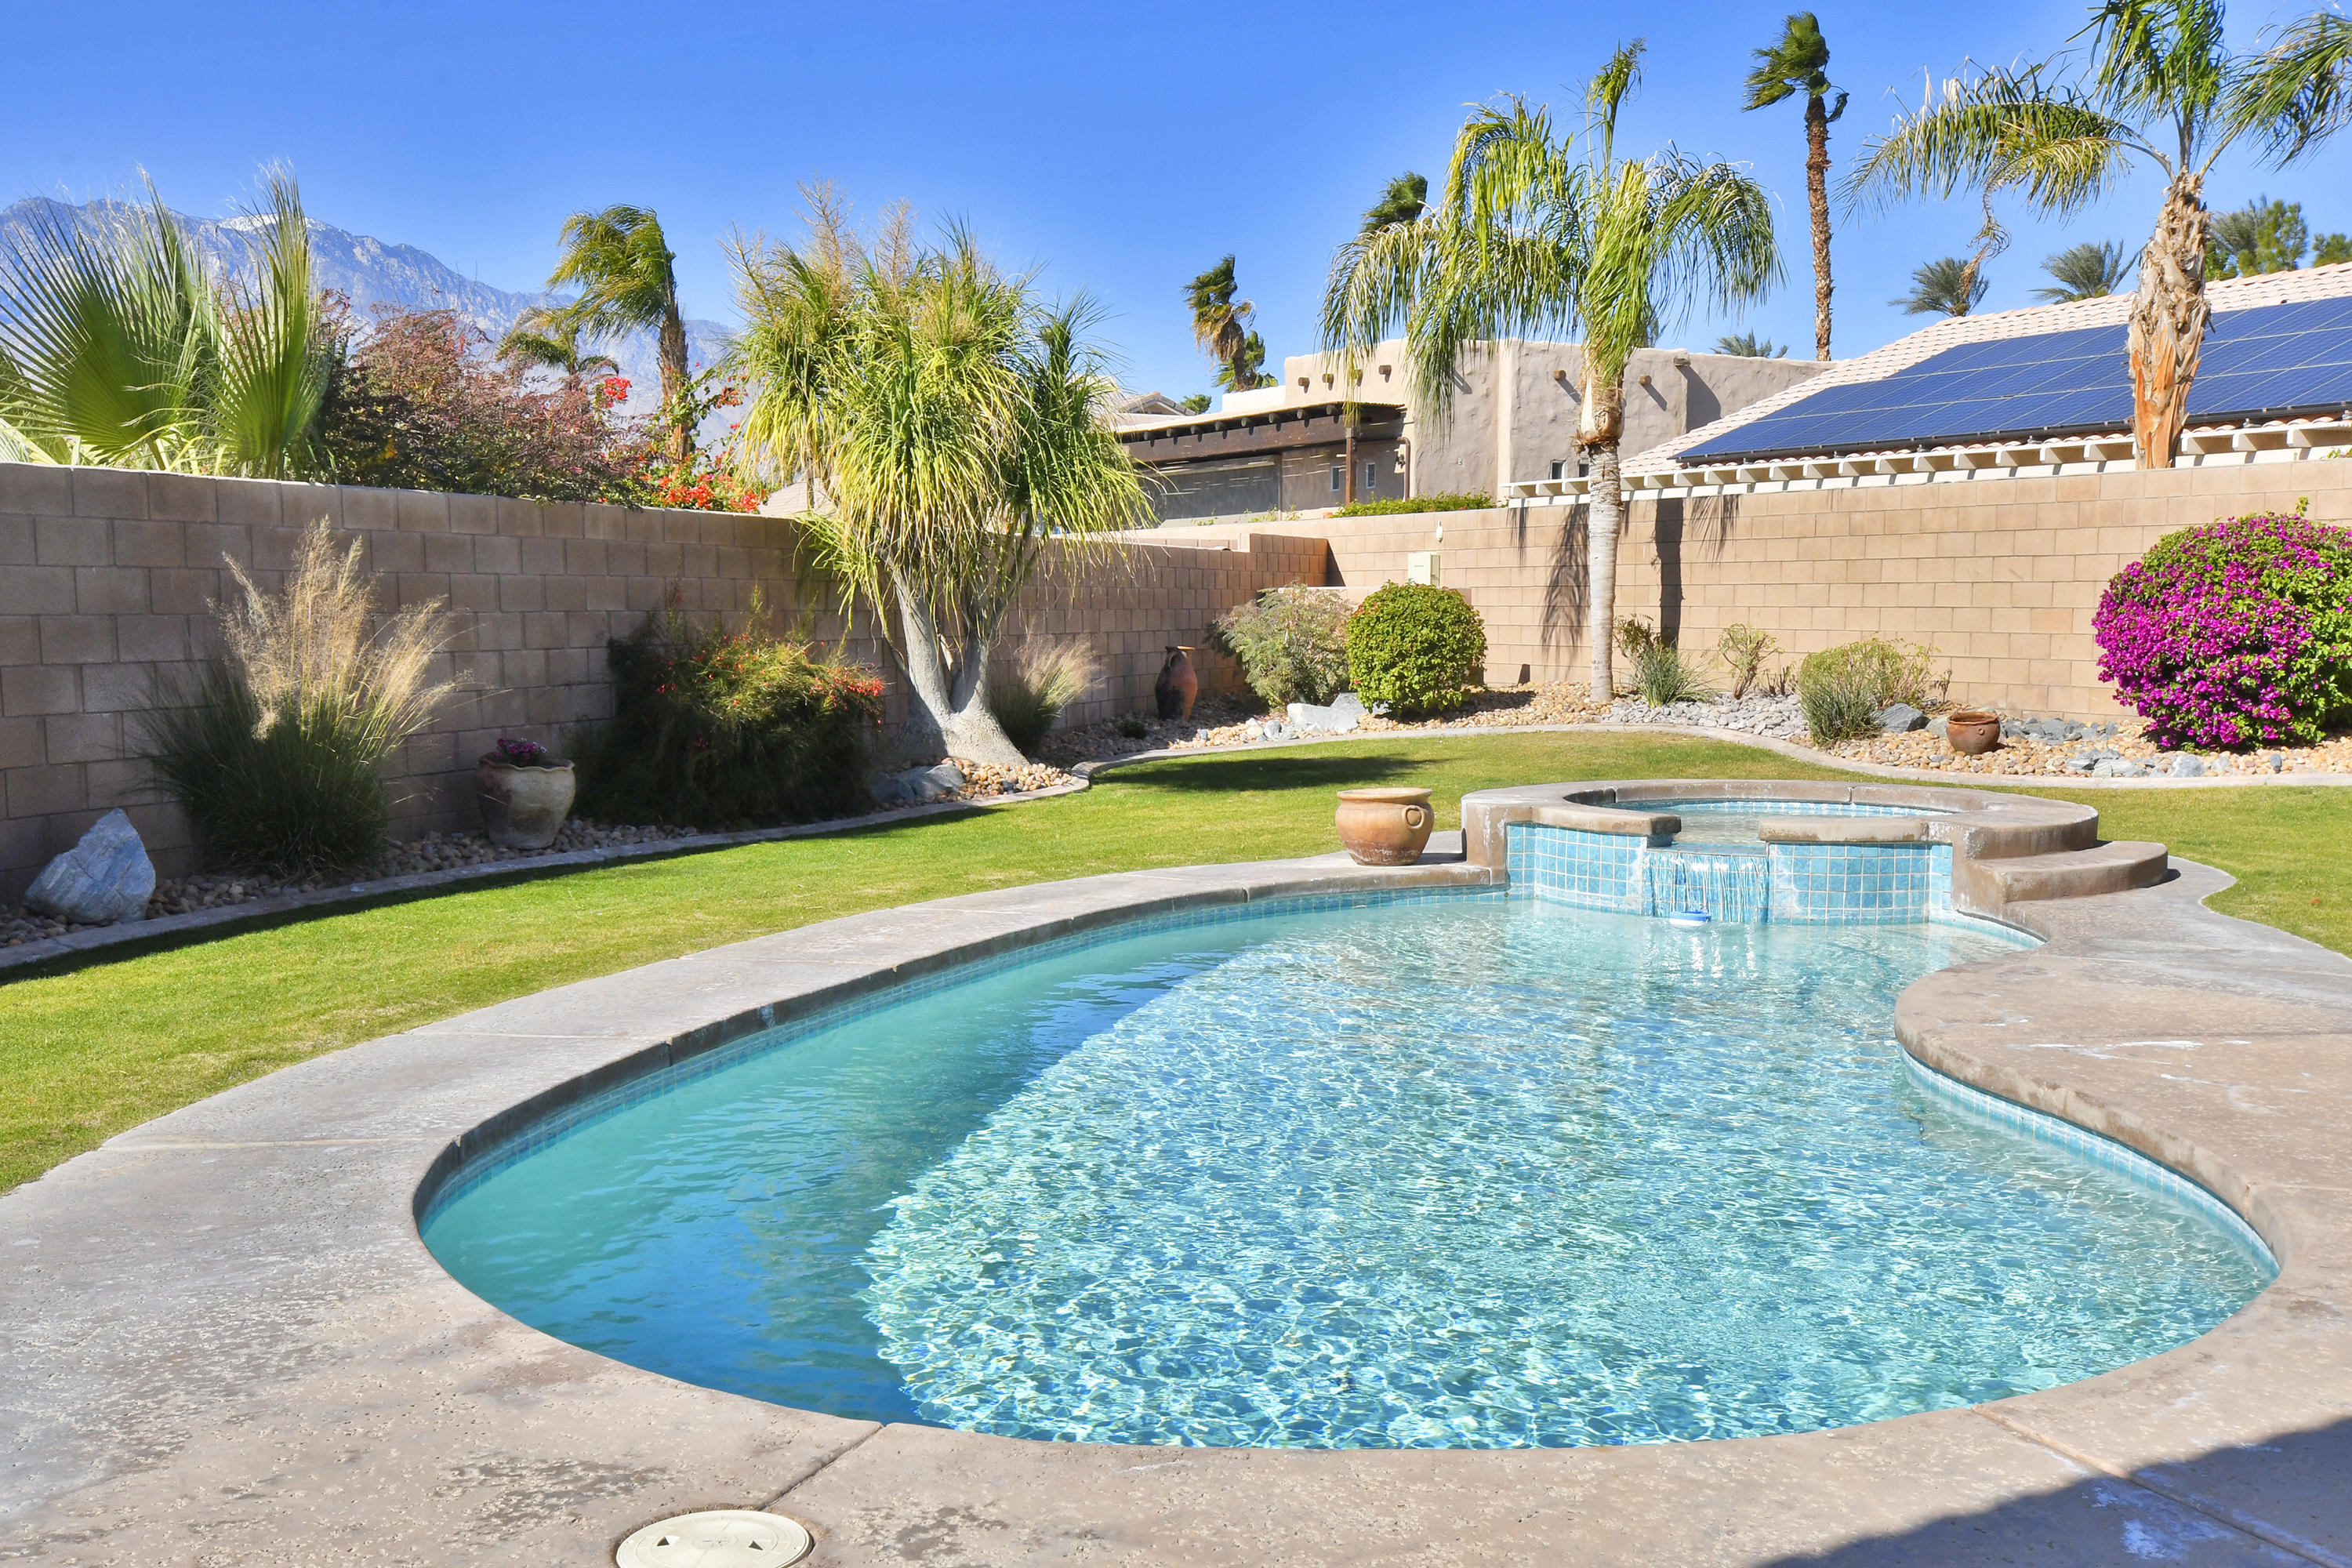 35607 Calle Sonoma, Cathedral City, California 92234, 3 Bedrooms Bedrooms, ,3 BathroomsBathrooms,Residential,For Sale,35607 Calle Sonoma,219038935